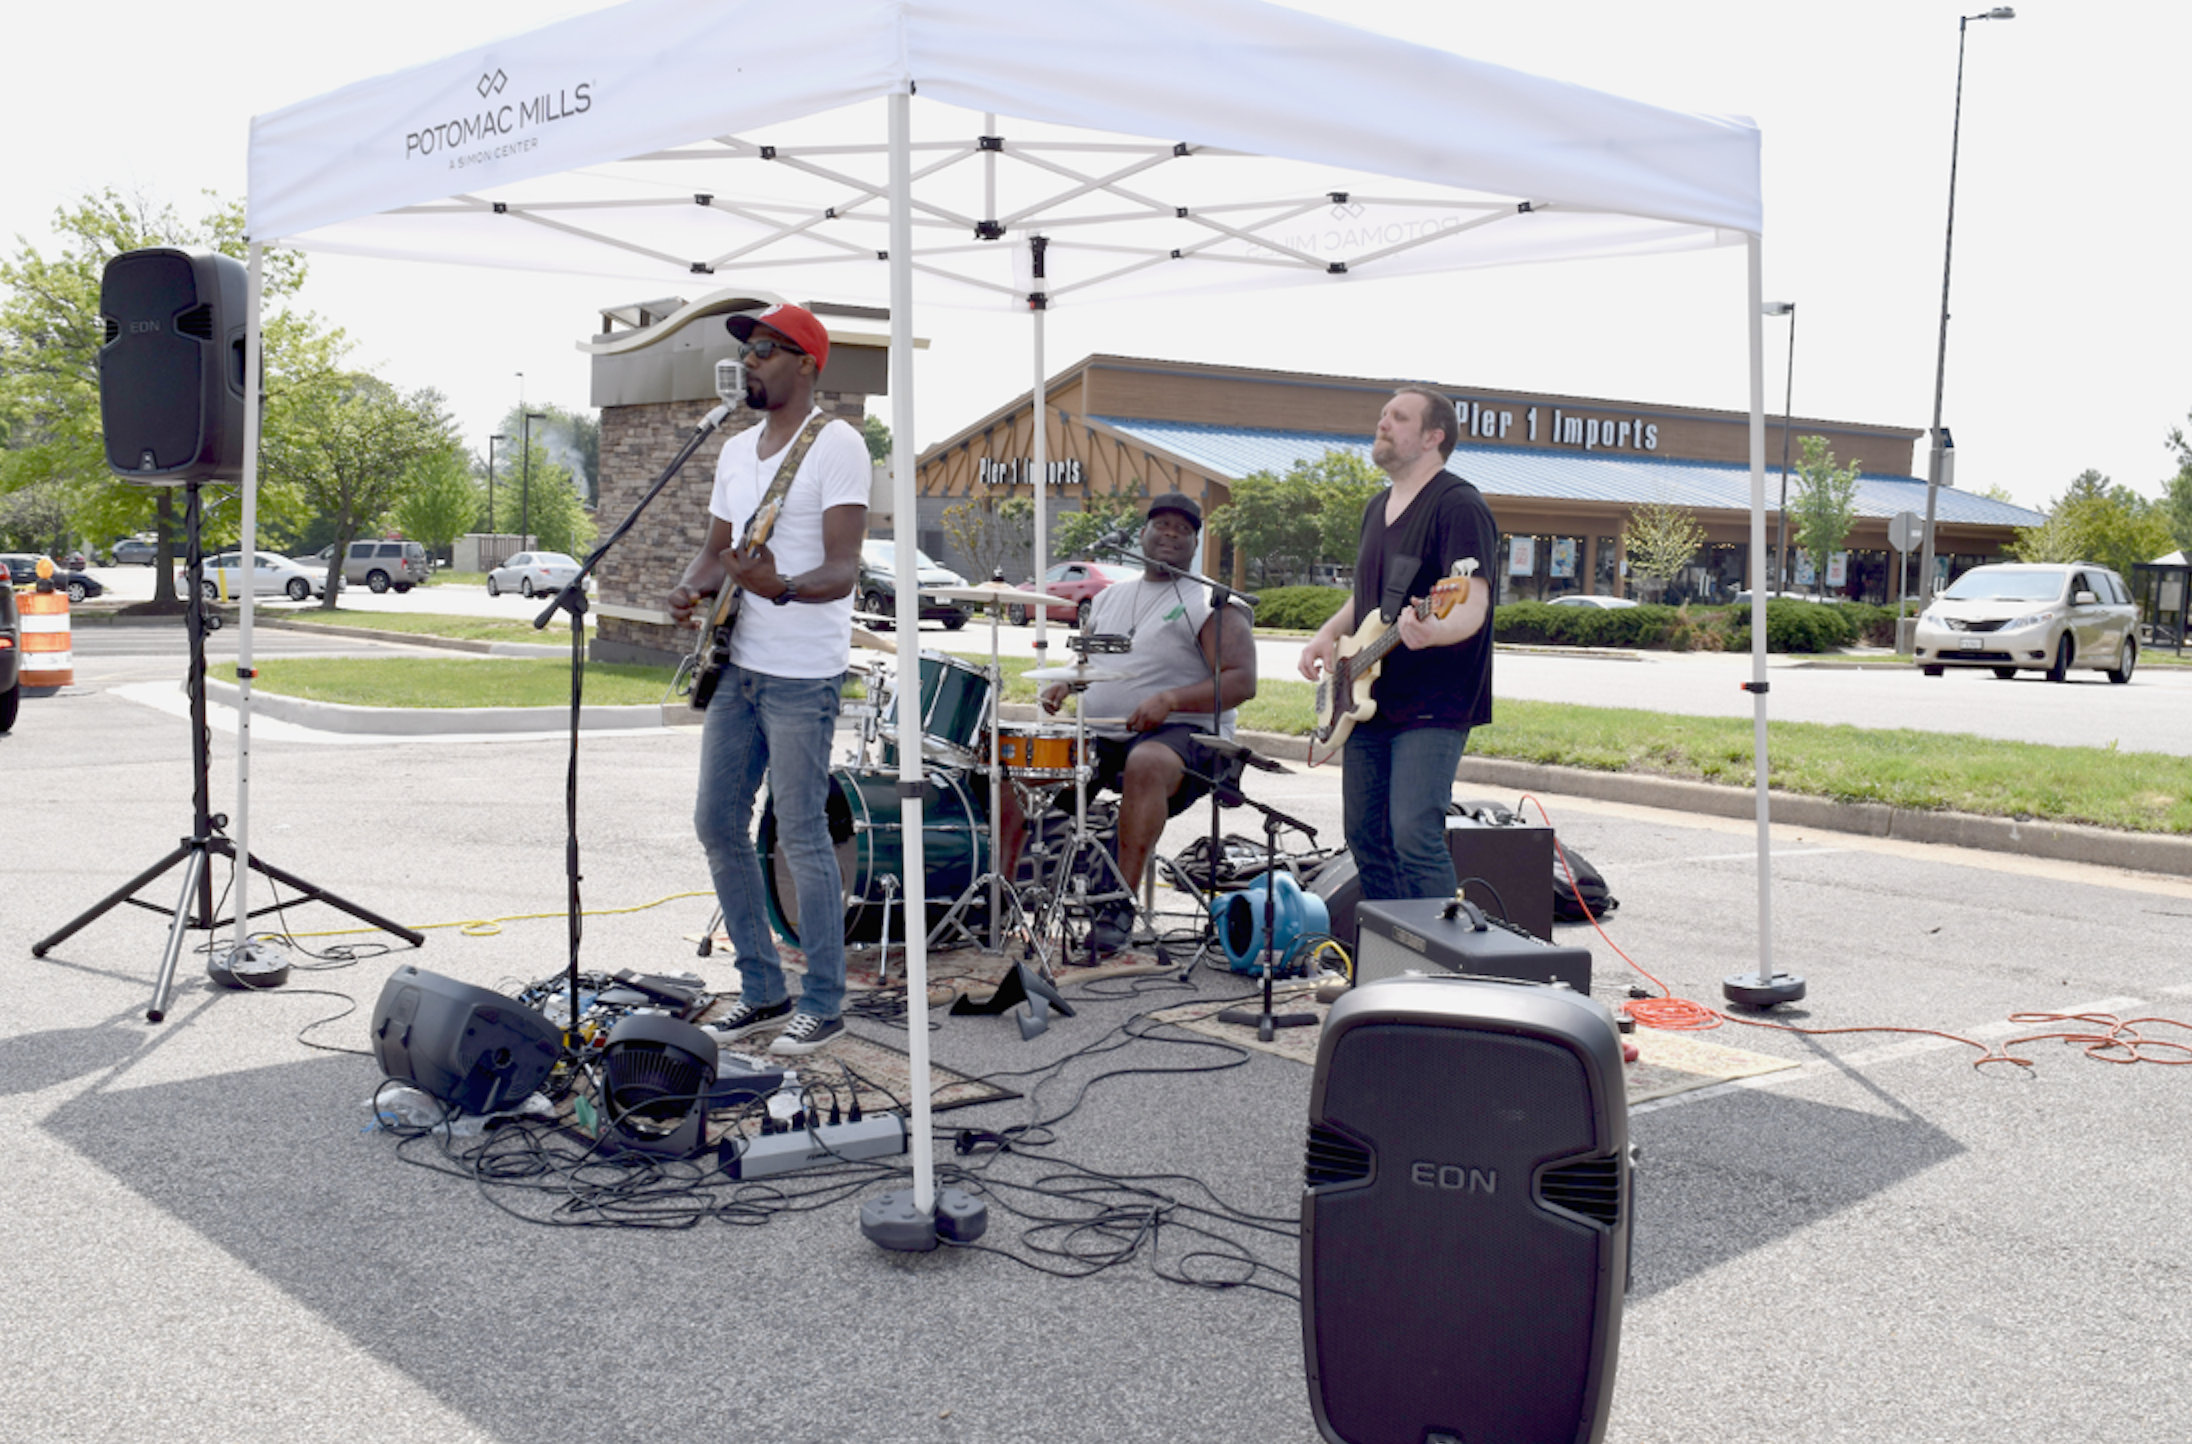 """A band played at the opening day of """"The Market at Potomac Mills"""" hosted by Potomac Mils mall in Woodbridge, Virginia last April 29, 2017"""